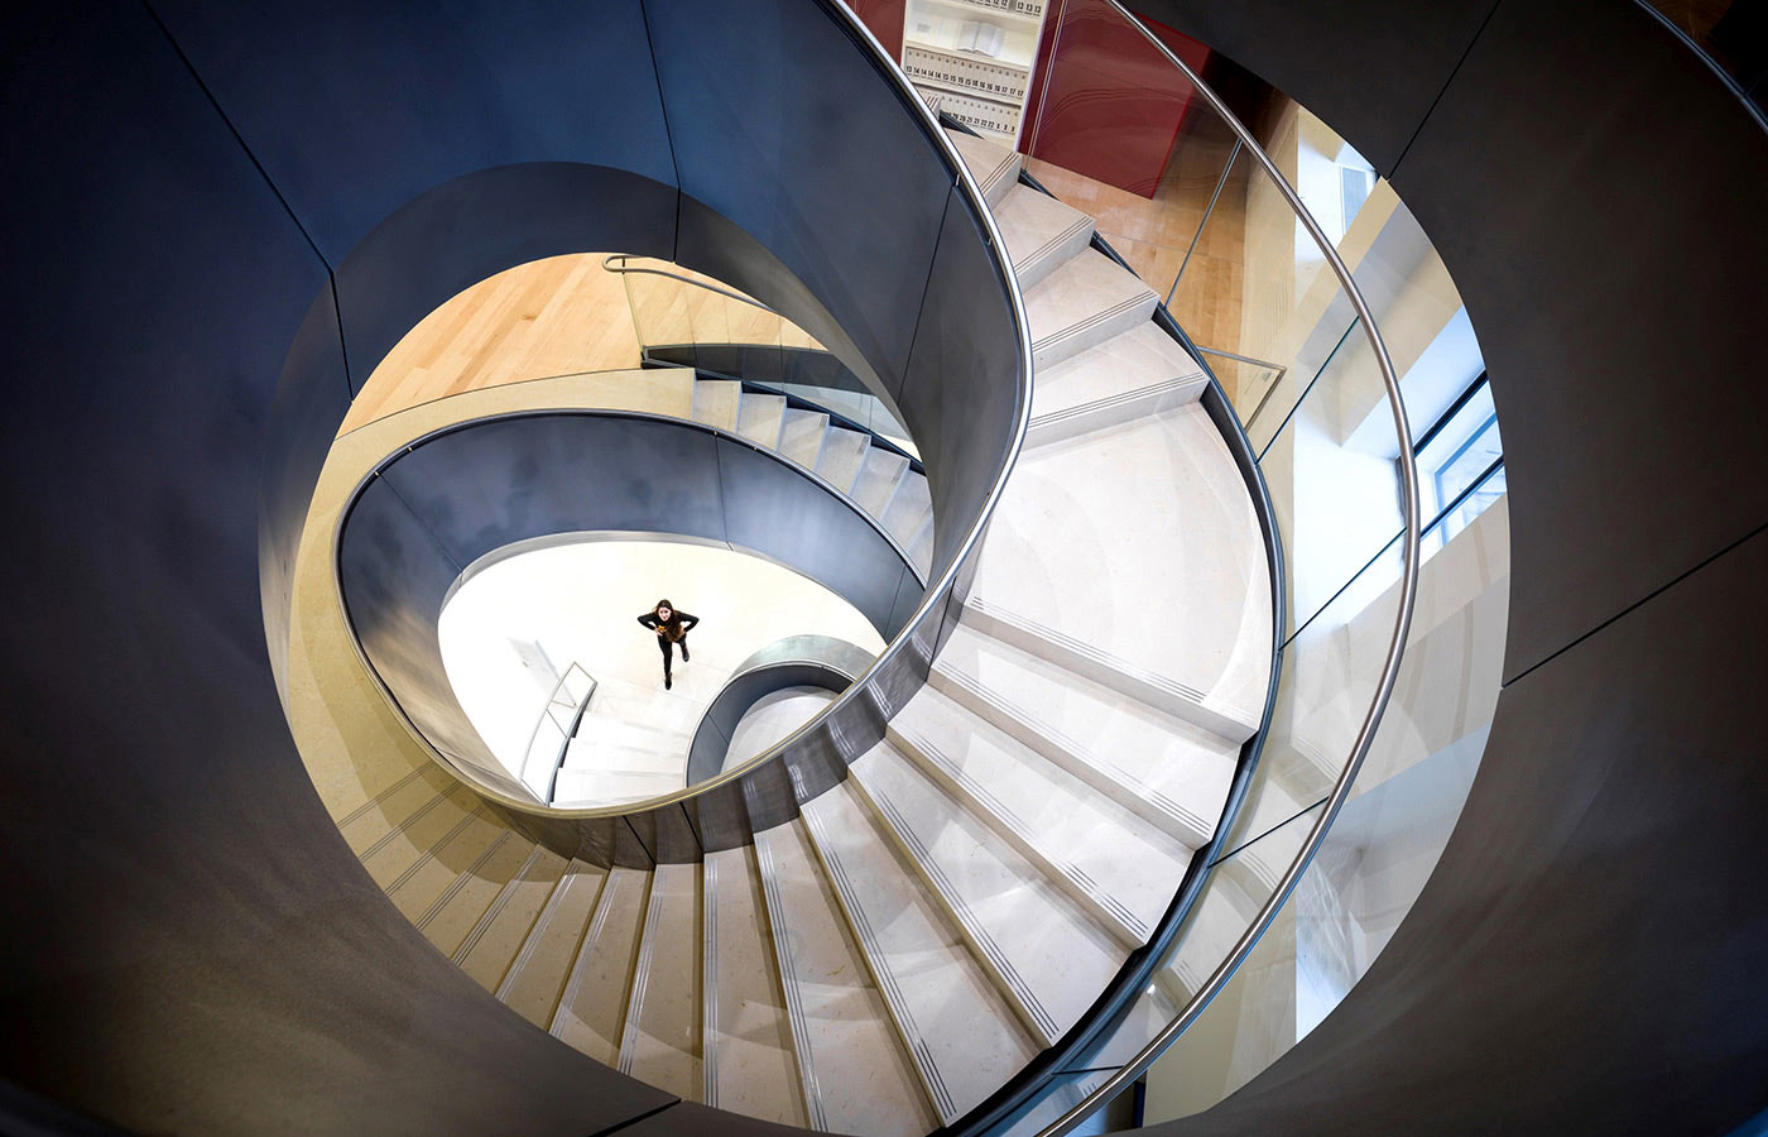 Dynamic staircase designed as a central part of the Wellcome Collection Development Project © Wilkinson Eyre